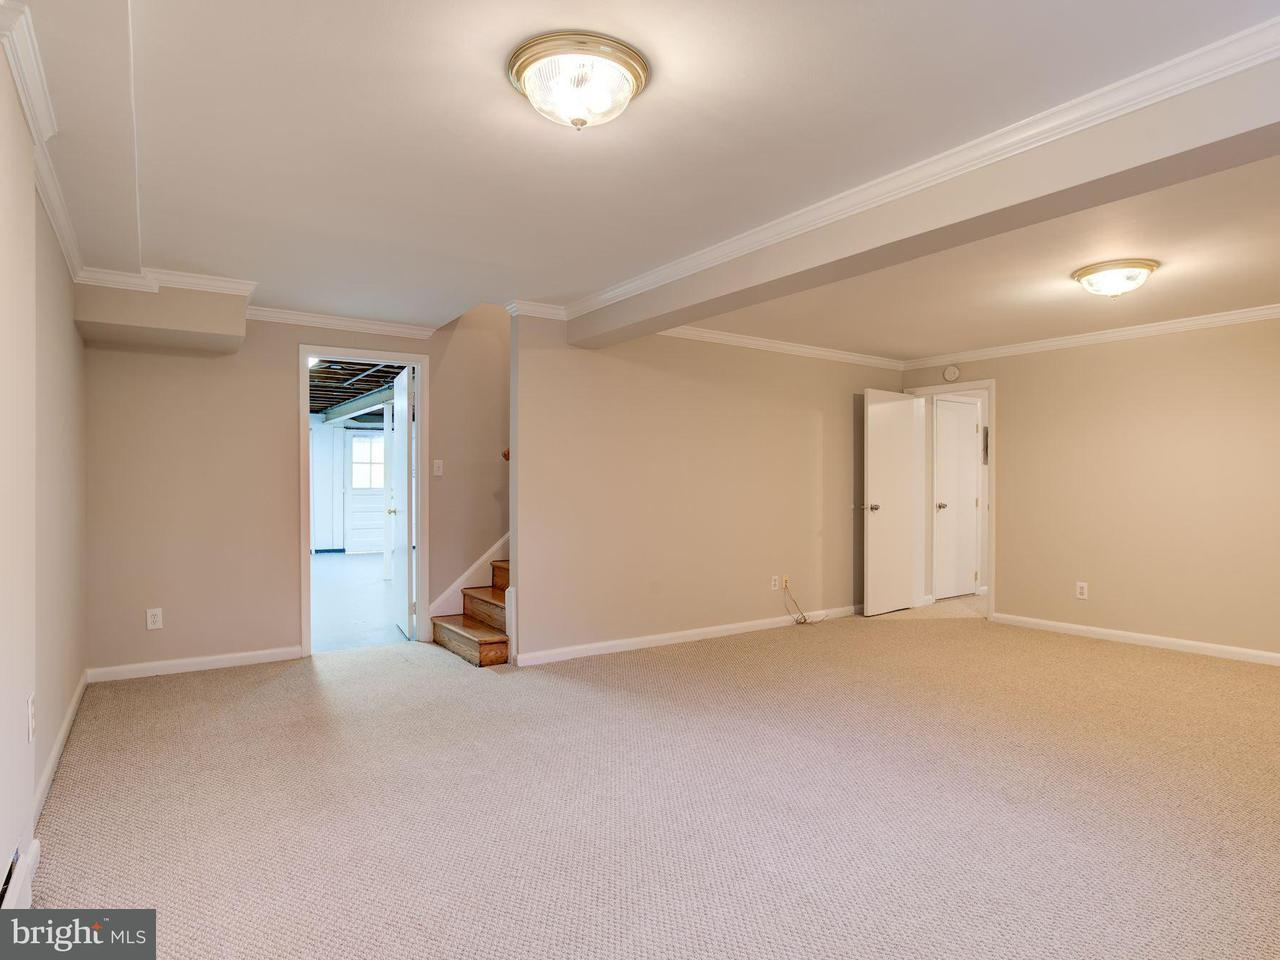 Additional photo for property listing at 3718 Randolph Street 3718 Randolph Street Fairfax, Virginia 22030 Verenigde Staten